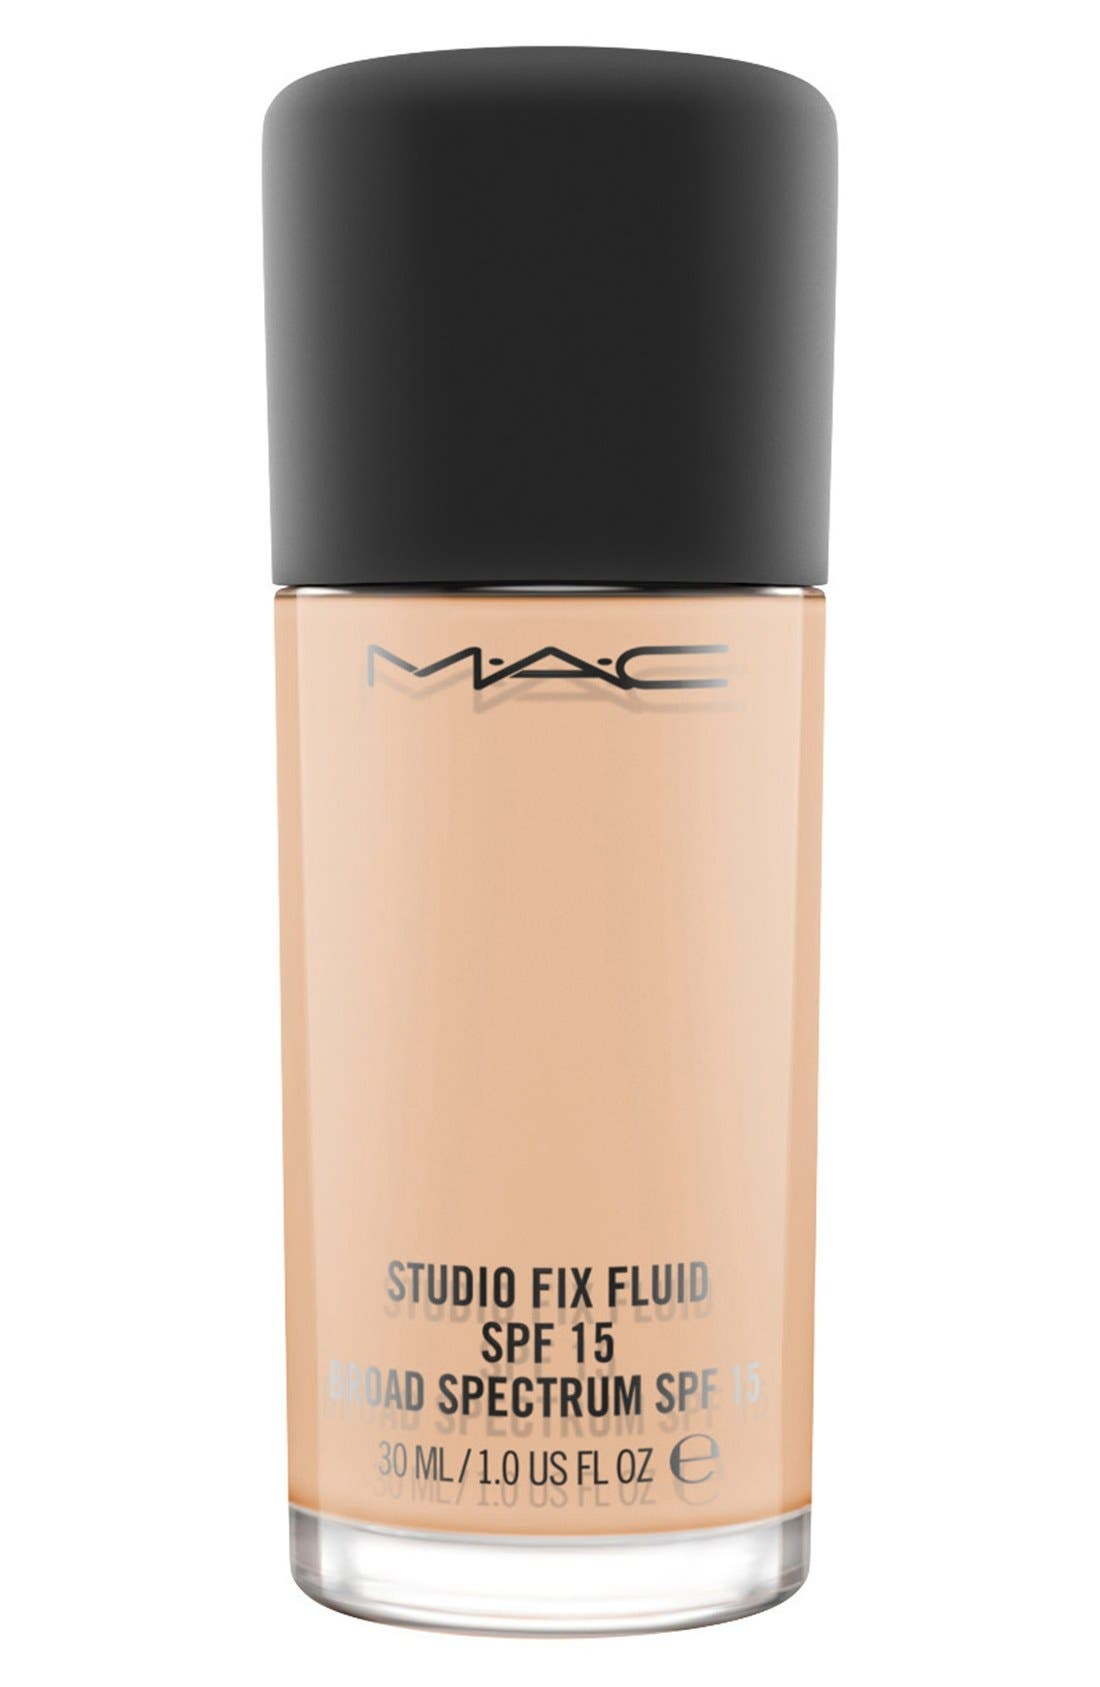 MAC M·A·C Studio Fix Fluid Foundation SPF 15,                             Main thumbnail 1, color,                             NW20 WARM NEUTRAL ROSY